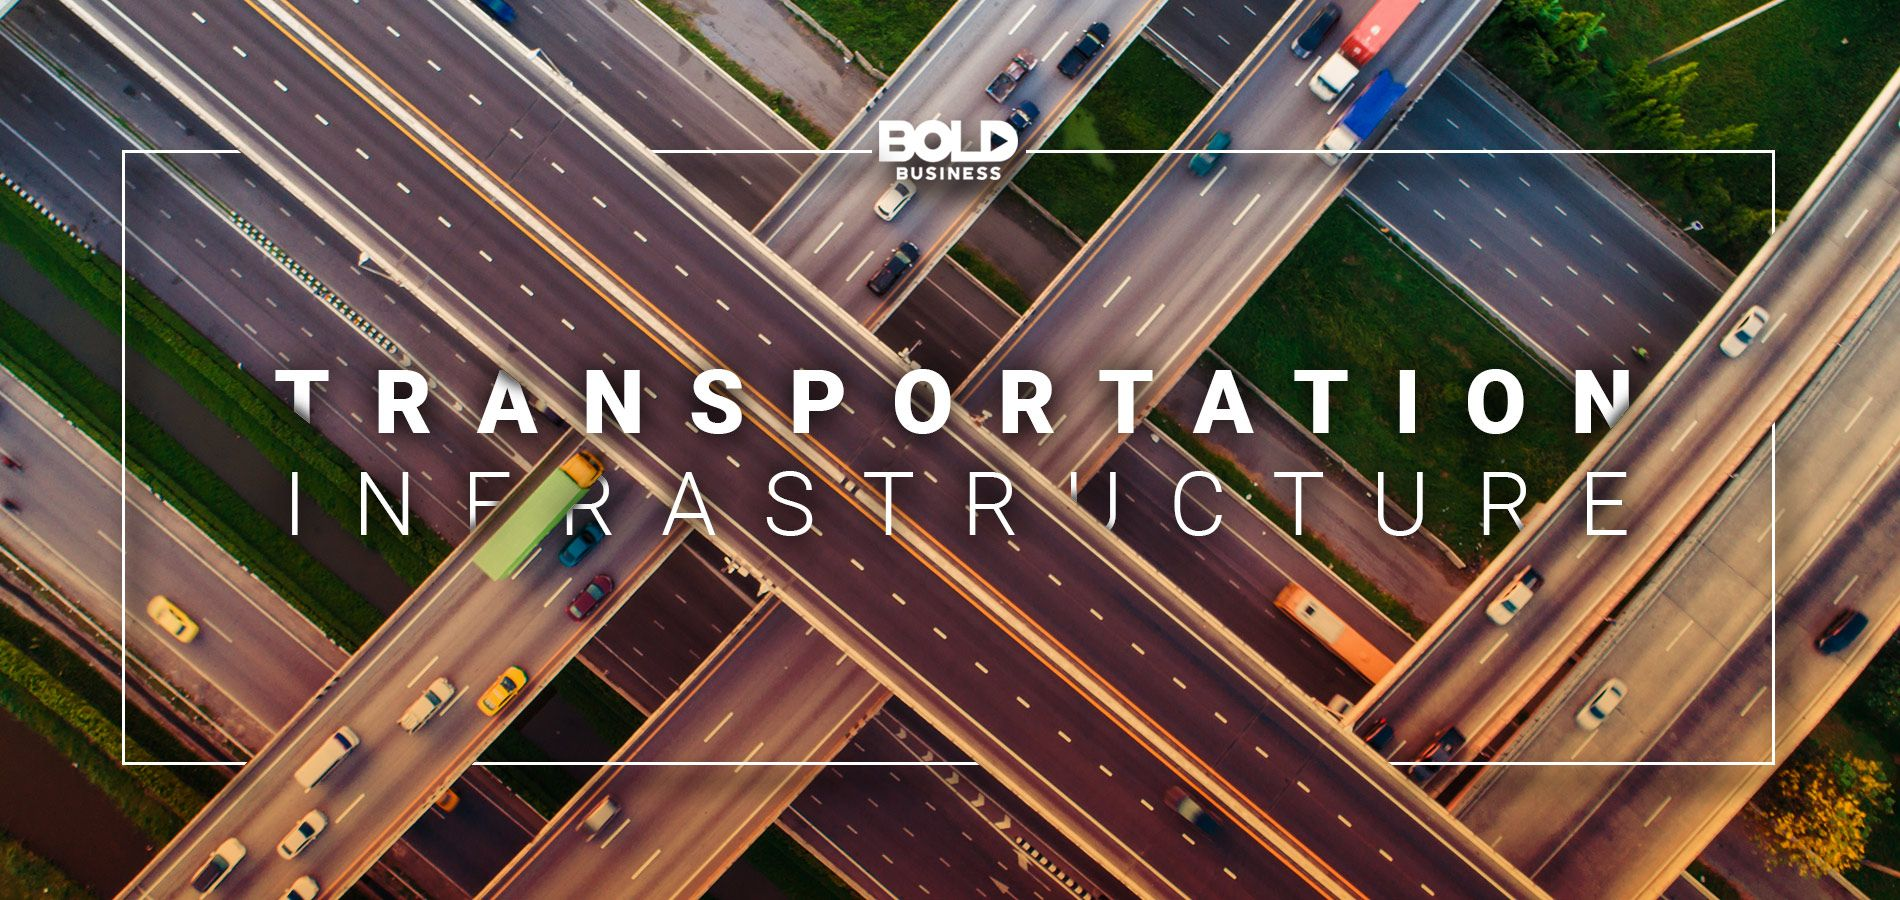 a photo of intersecting roads and bridges amidst the urgent need for sustainable transport solutions